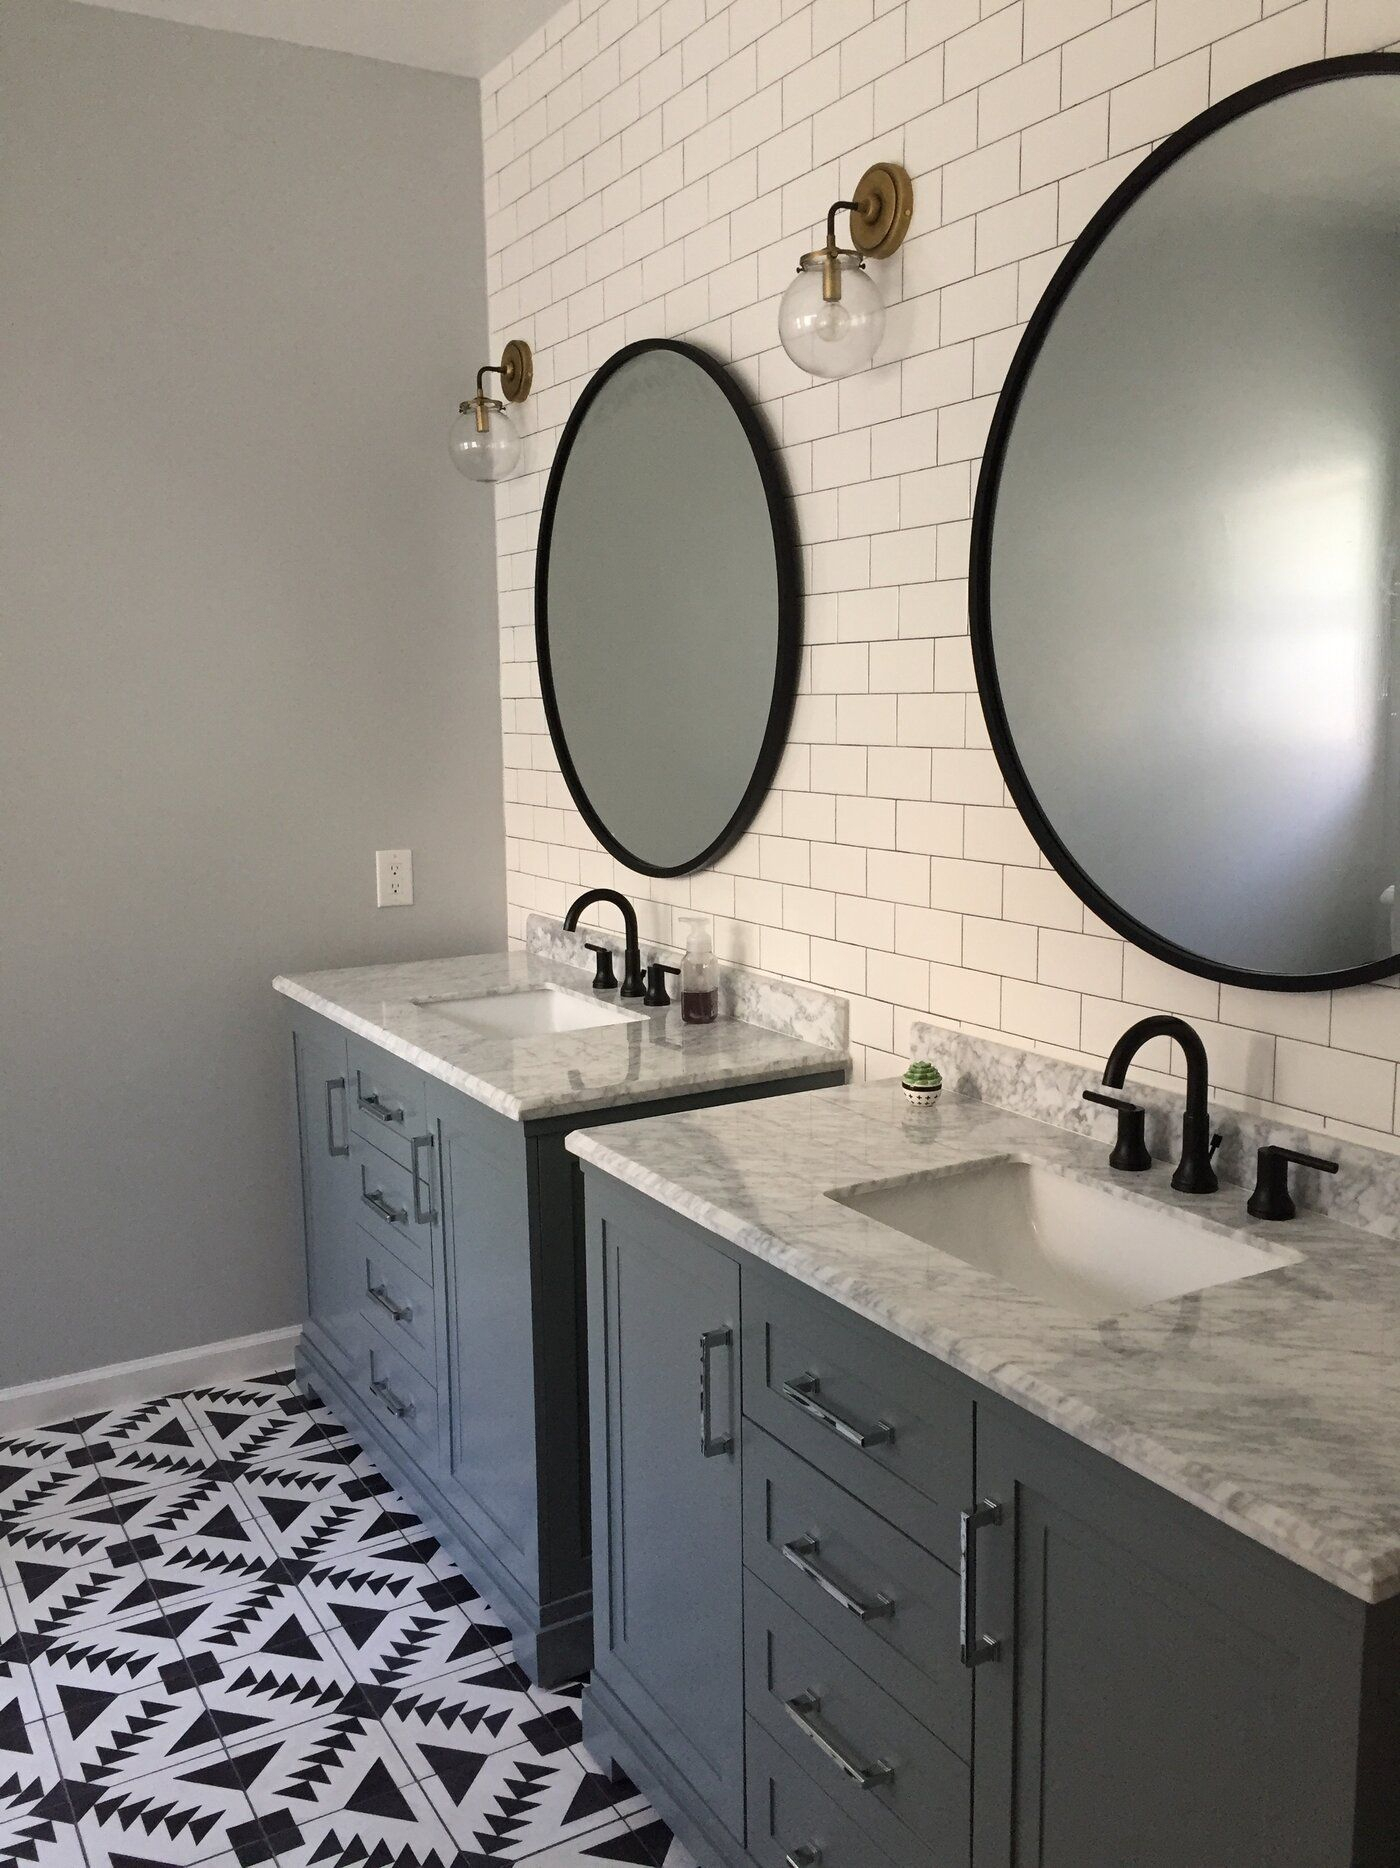 Hub Modern And Contemporary Accent Mirror In 2019 | Bathroom for Hub Modern And Contemporary Accent Mirrors (Image 5 of 30)